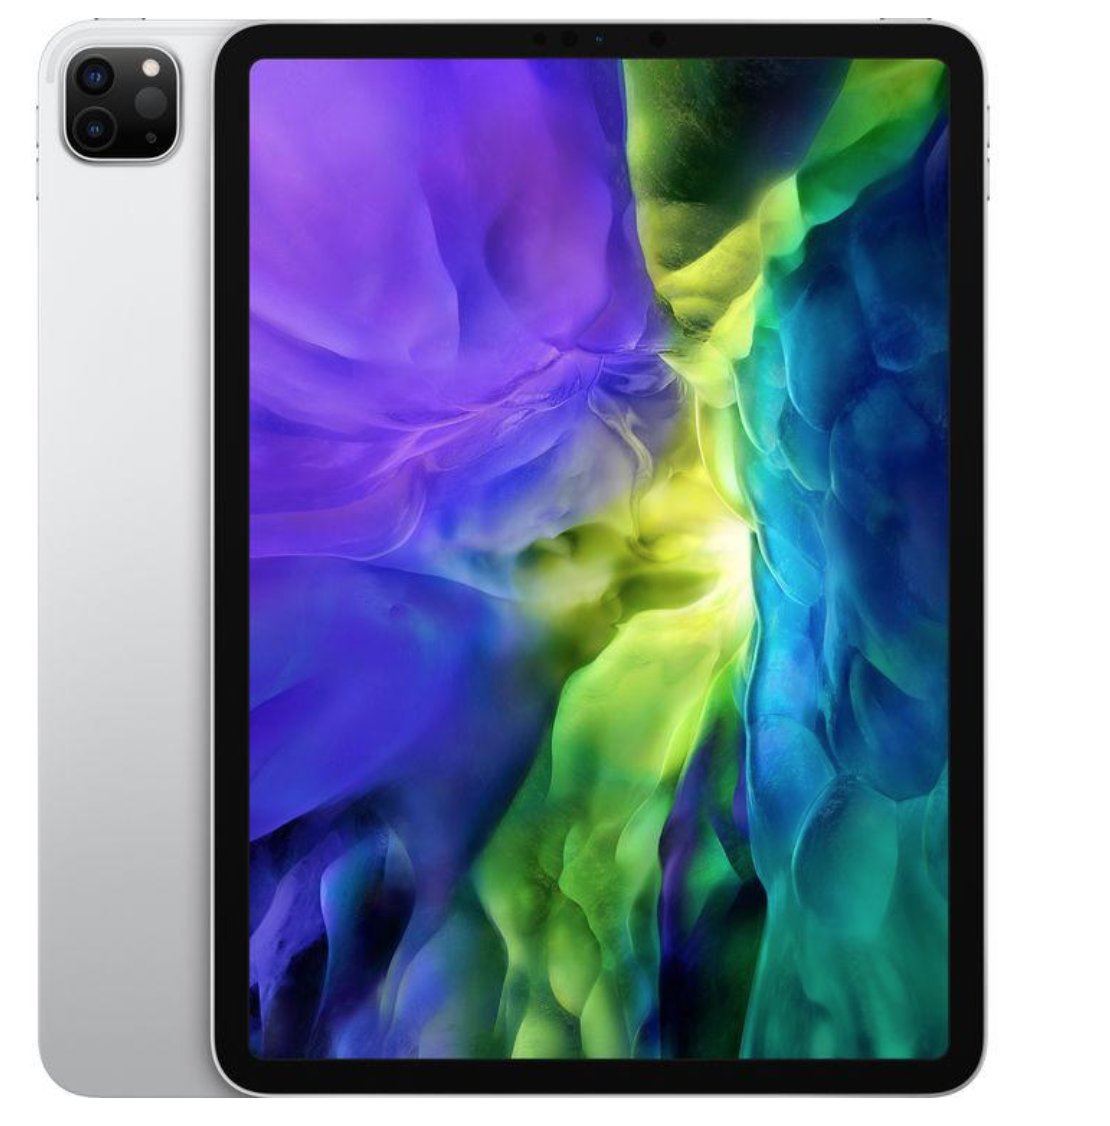 iPad Pro 11-inch 128GB WiFi - Silver - Discontinued April 2021 at Small Dog Electronics